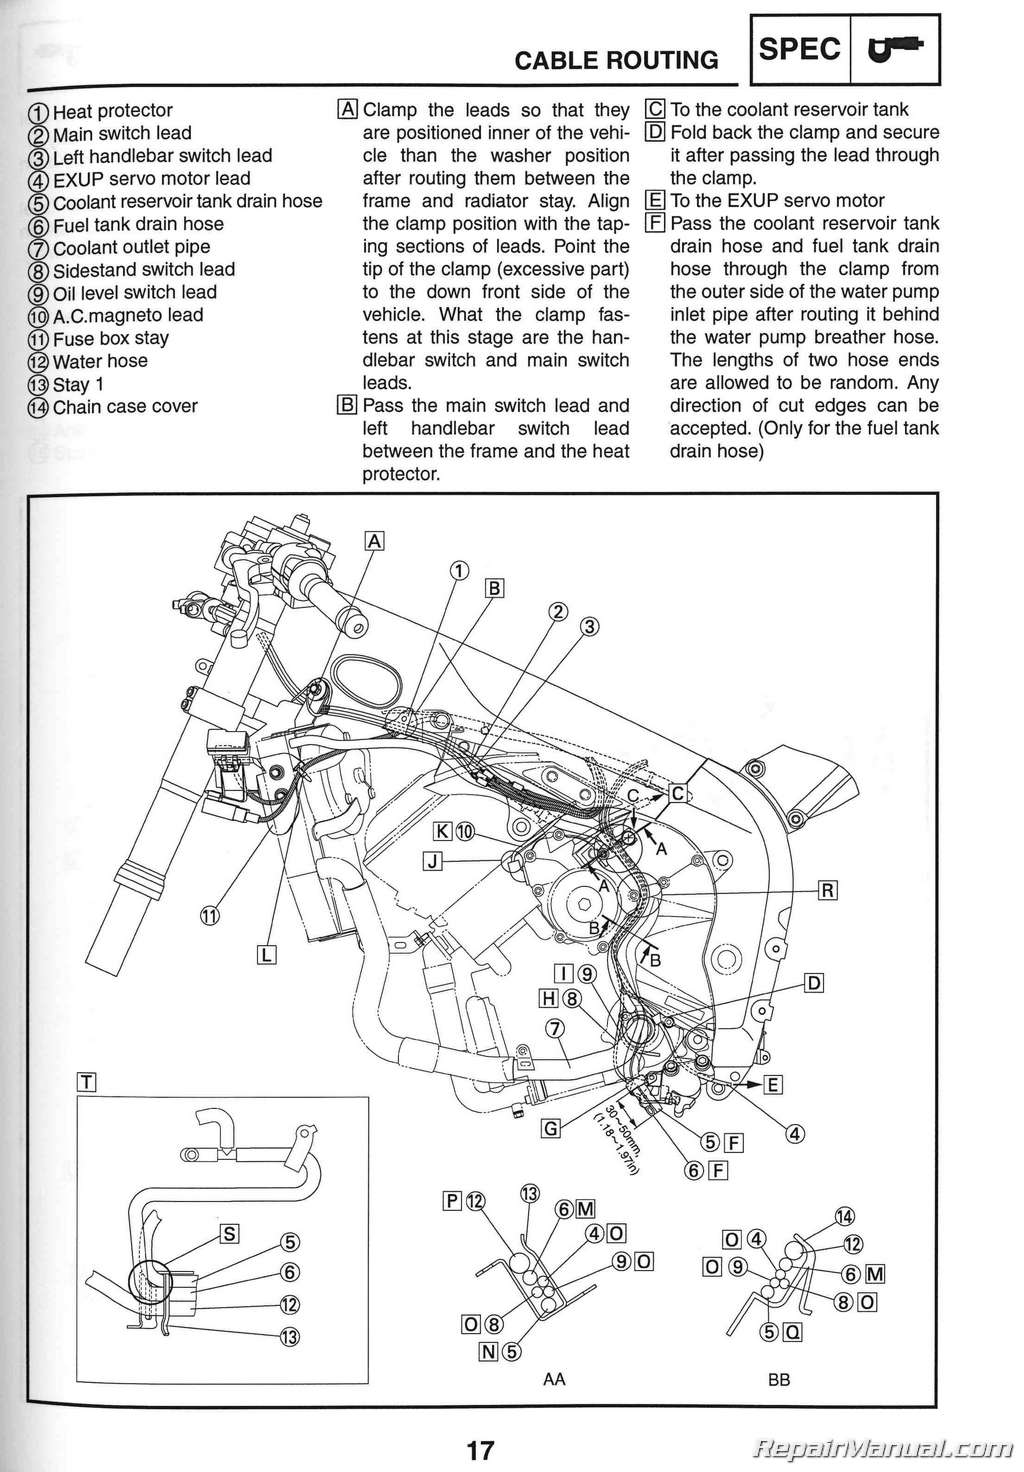 Yamaha R1 Ignition Switch Diagram Trusted Wiring Electrical Yzf Motorcycle Residential Mercury Outboard